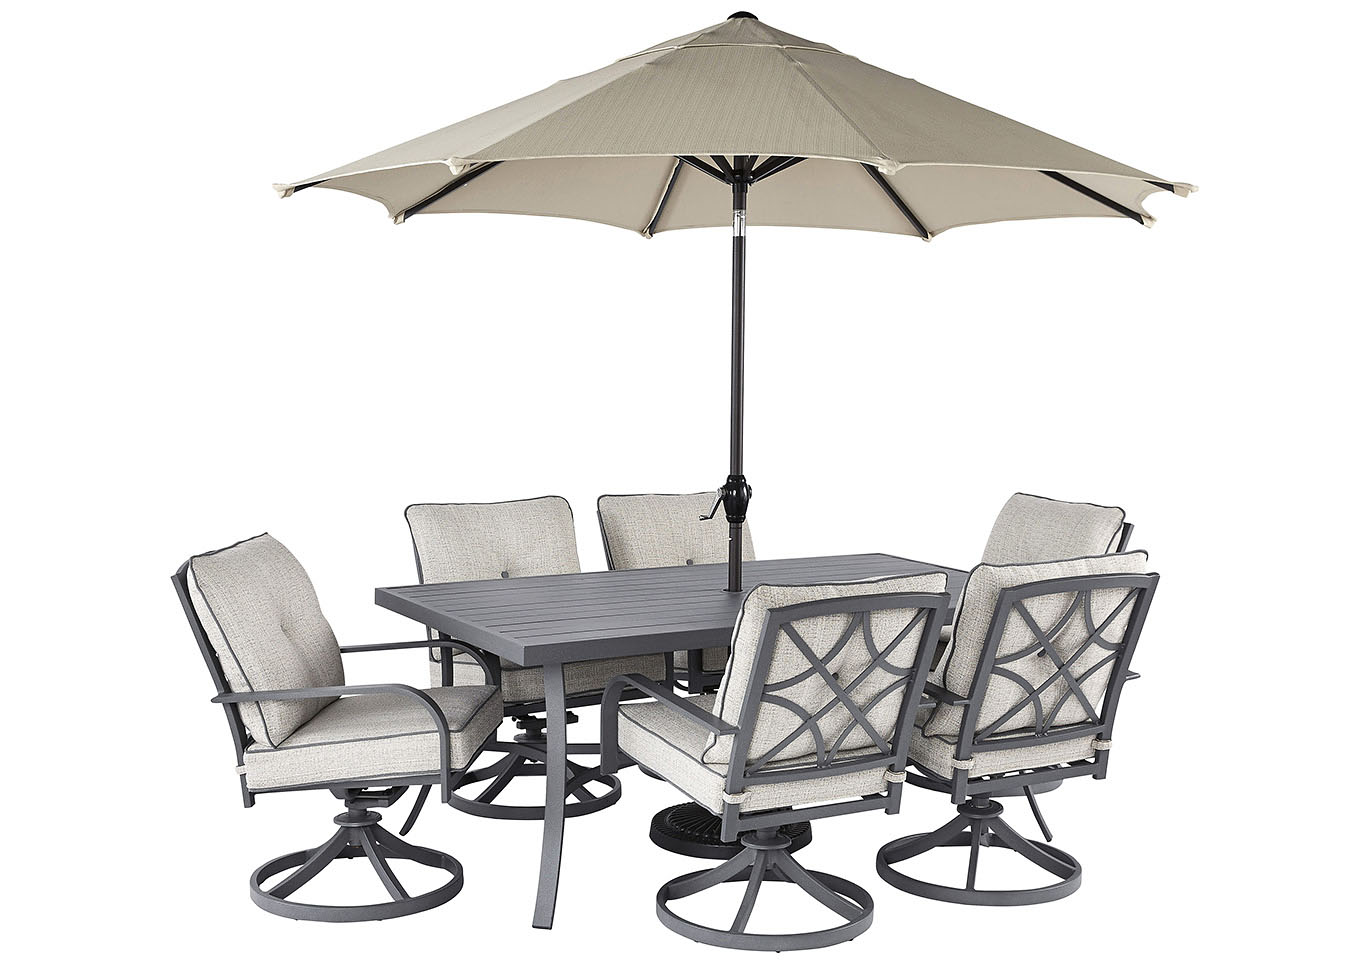 Donnalee Bay Gray Dining Table w/6 Swivel Chairs,Outdoor By Ashley